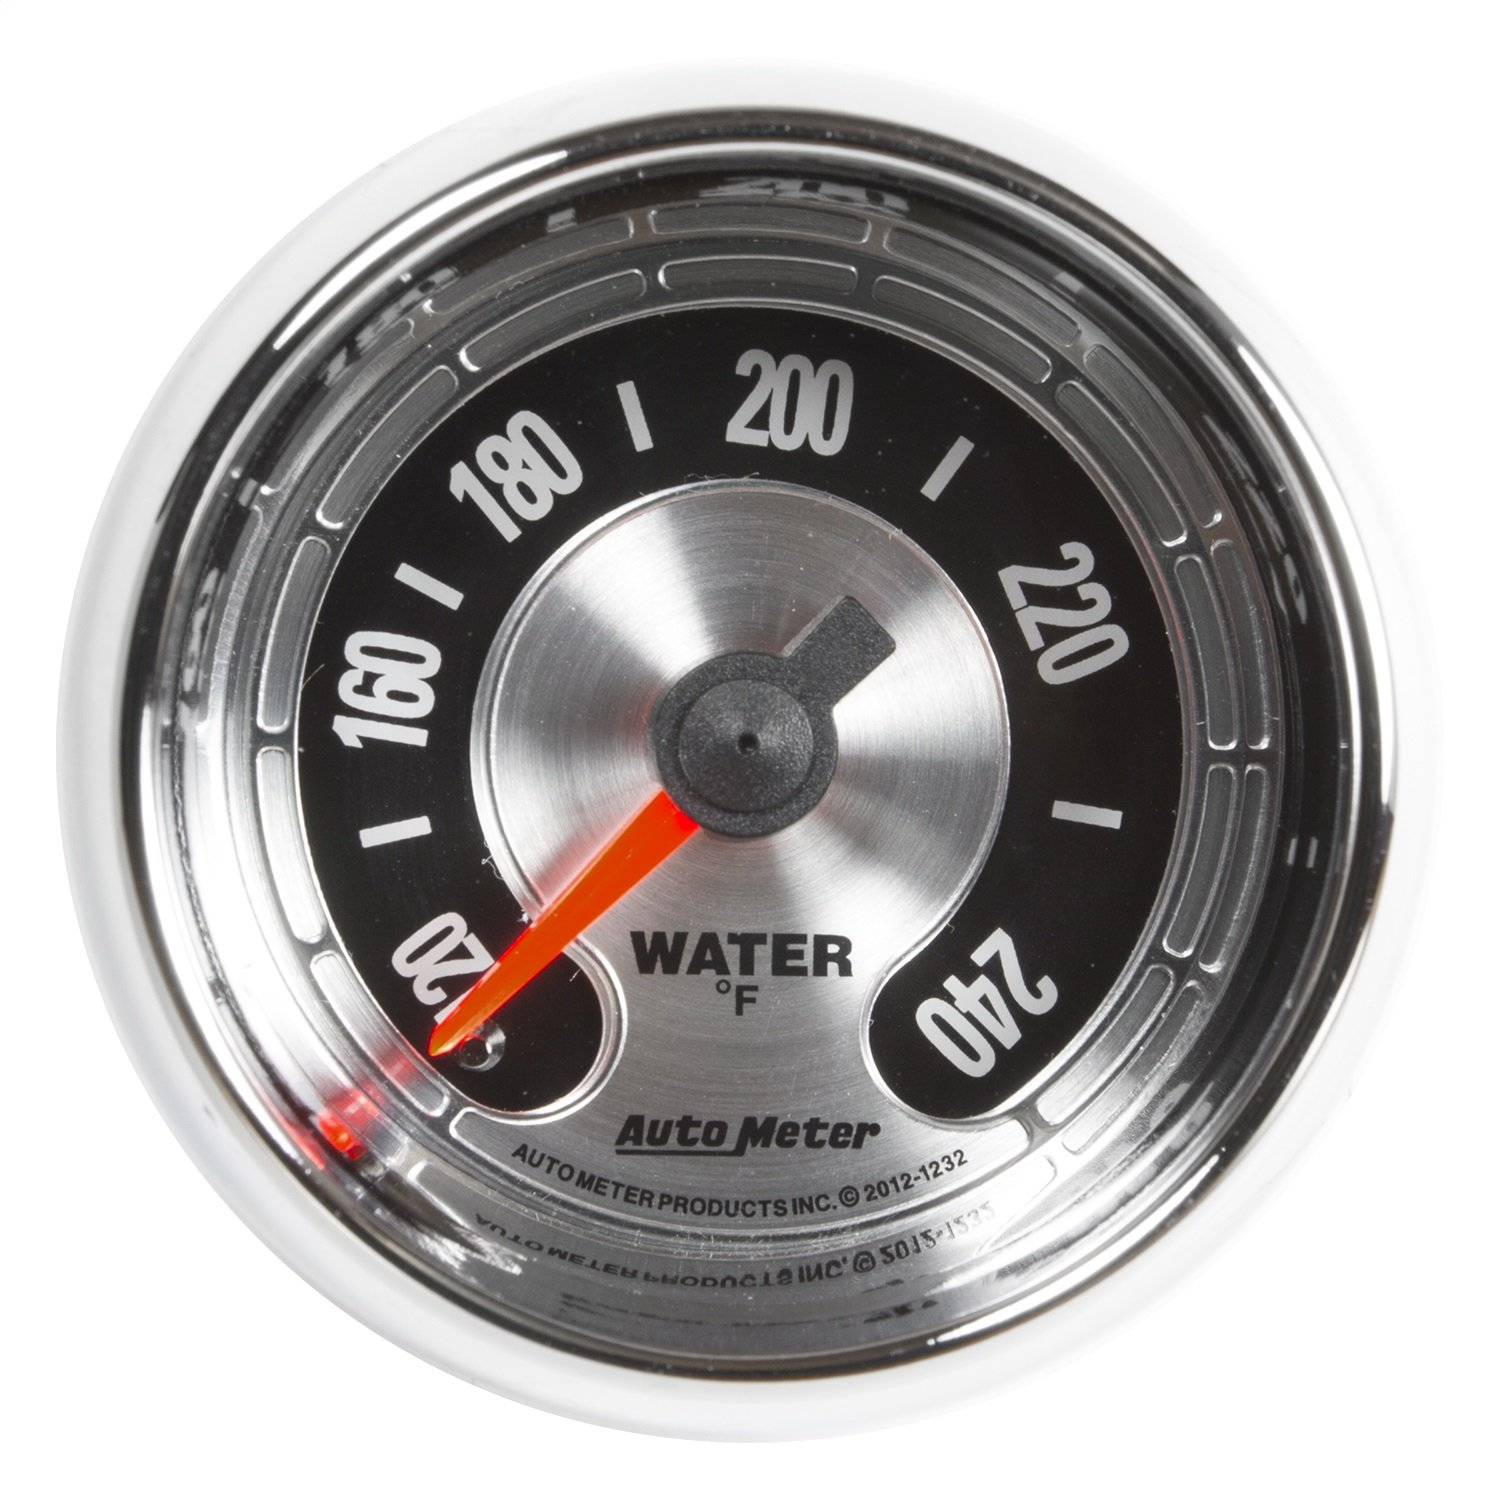 Auto Meter 1232 American Muscle 2-1/16'' Electric Water Temperature Gauge (100-240 Degree F, 52.4mm)